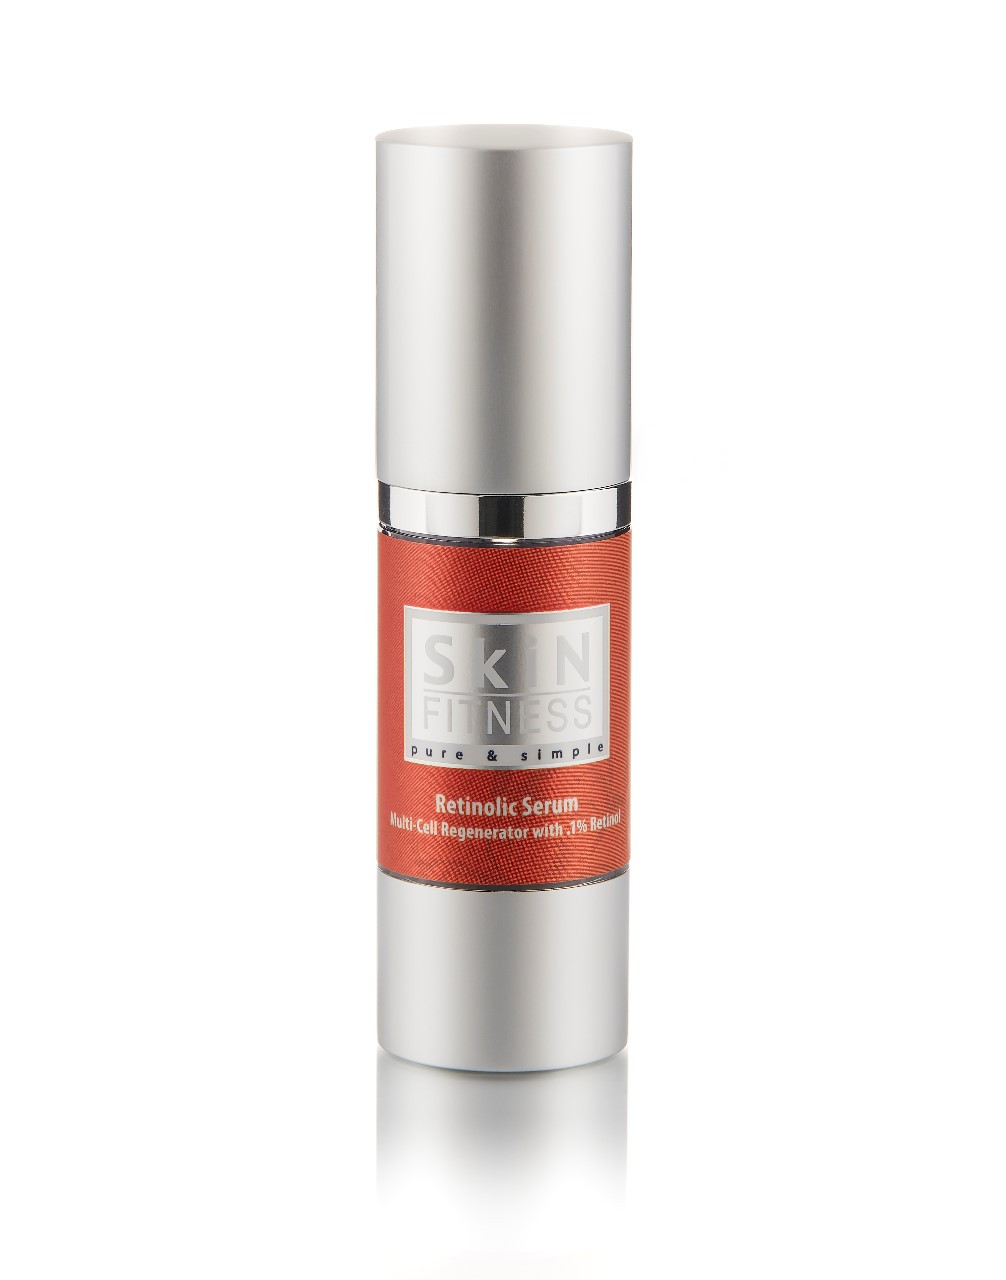 Skin Fitness Retinolic Serum (Vitamin A Treatment)